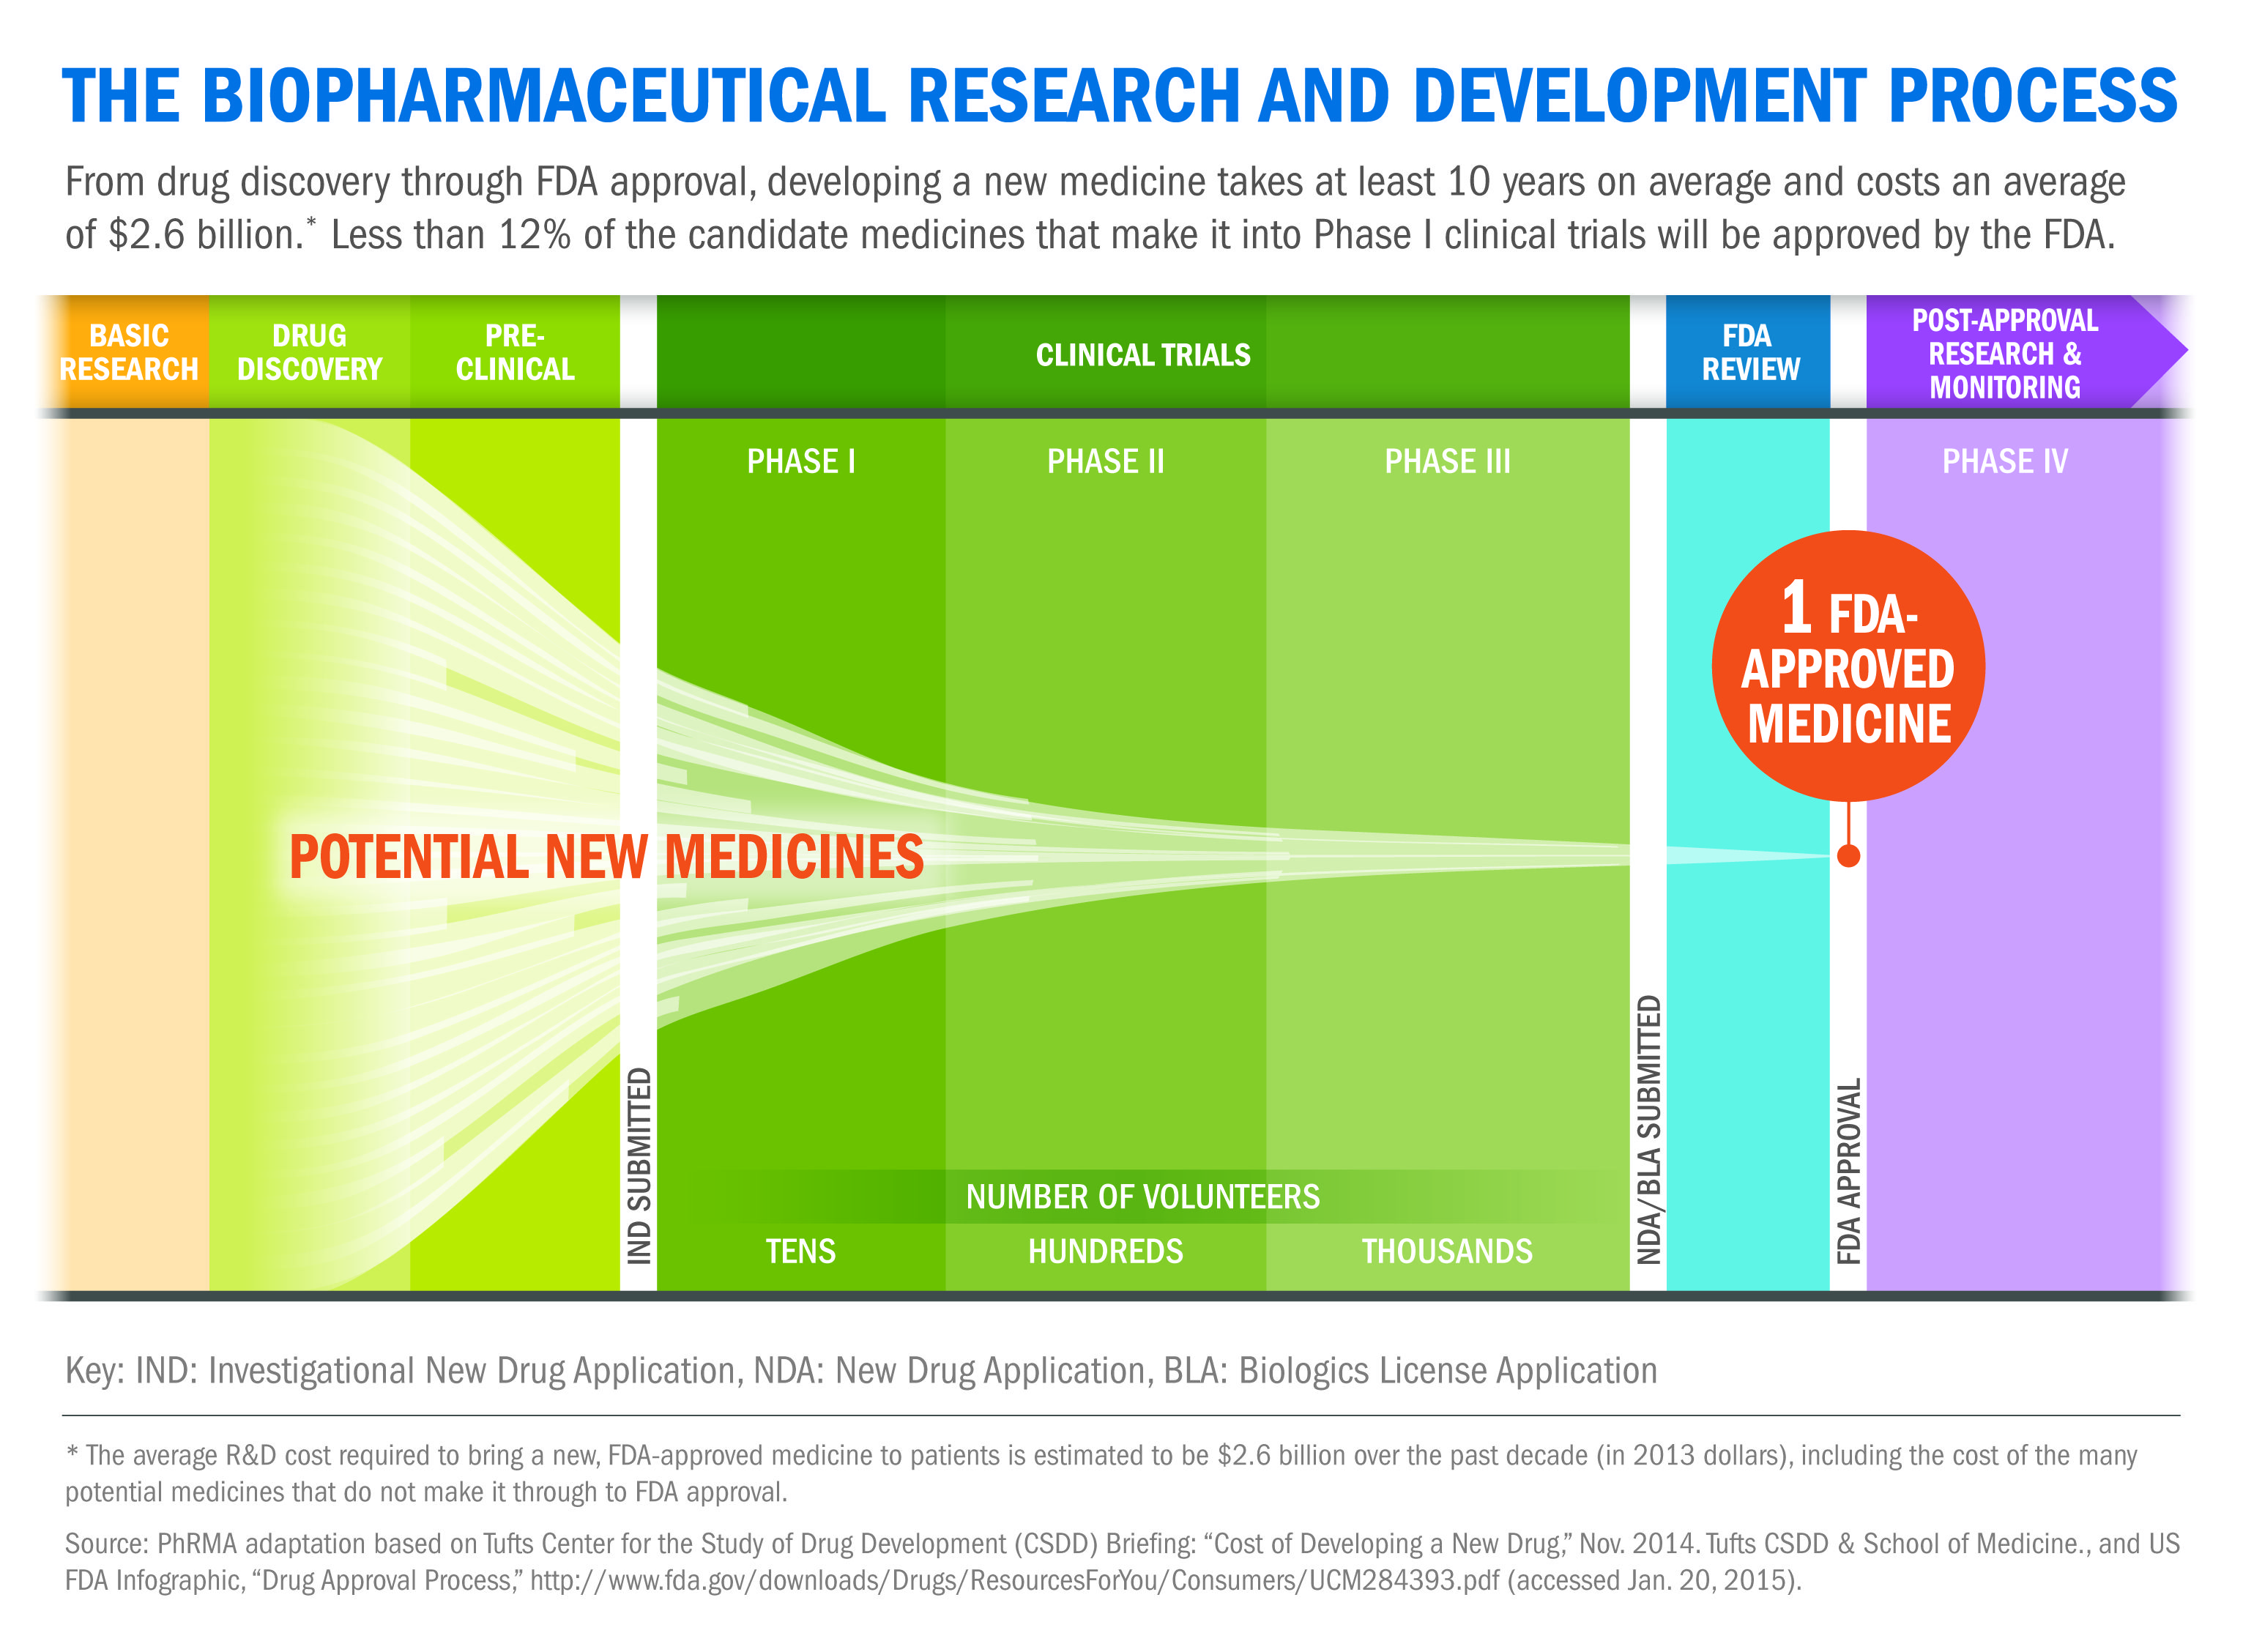 17 Best images about Clinical trials on Pinterest   Medicine ...